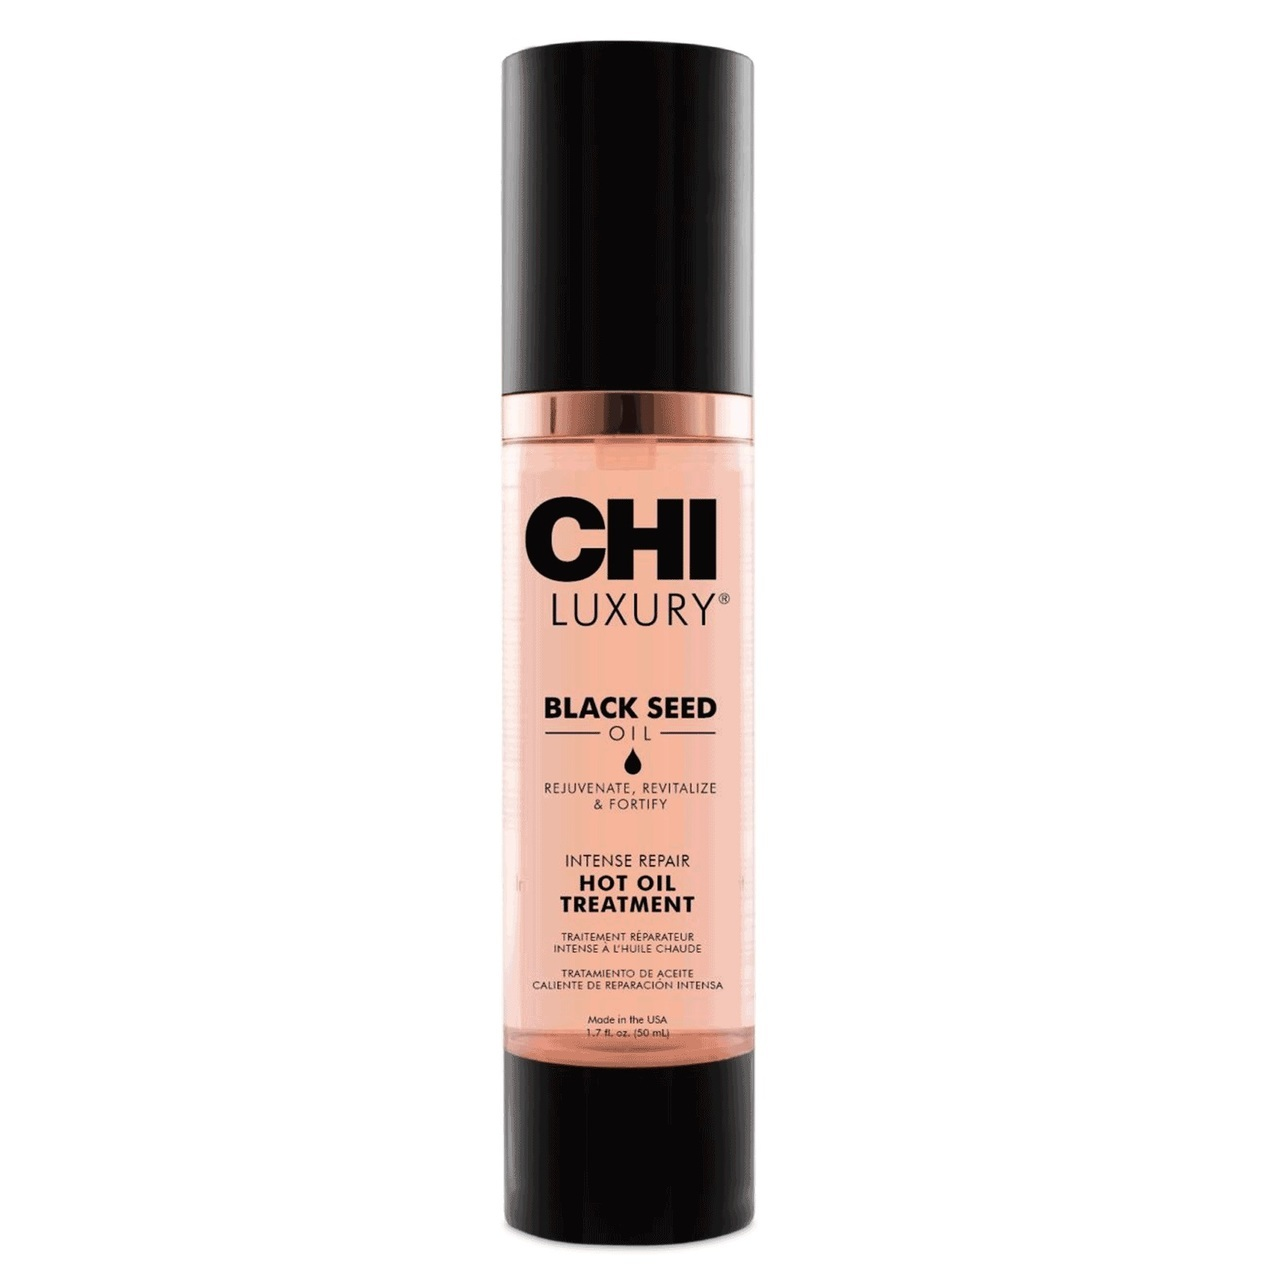 Primary image for CHI Luxury Black Seed Intense Repair Hot Oil Treatment 1.7oz